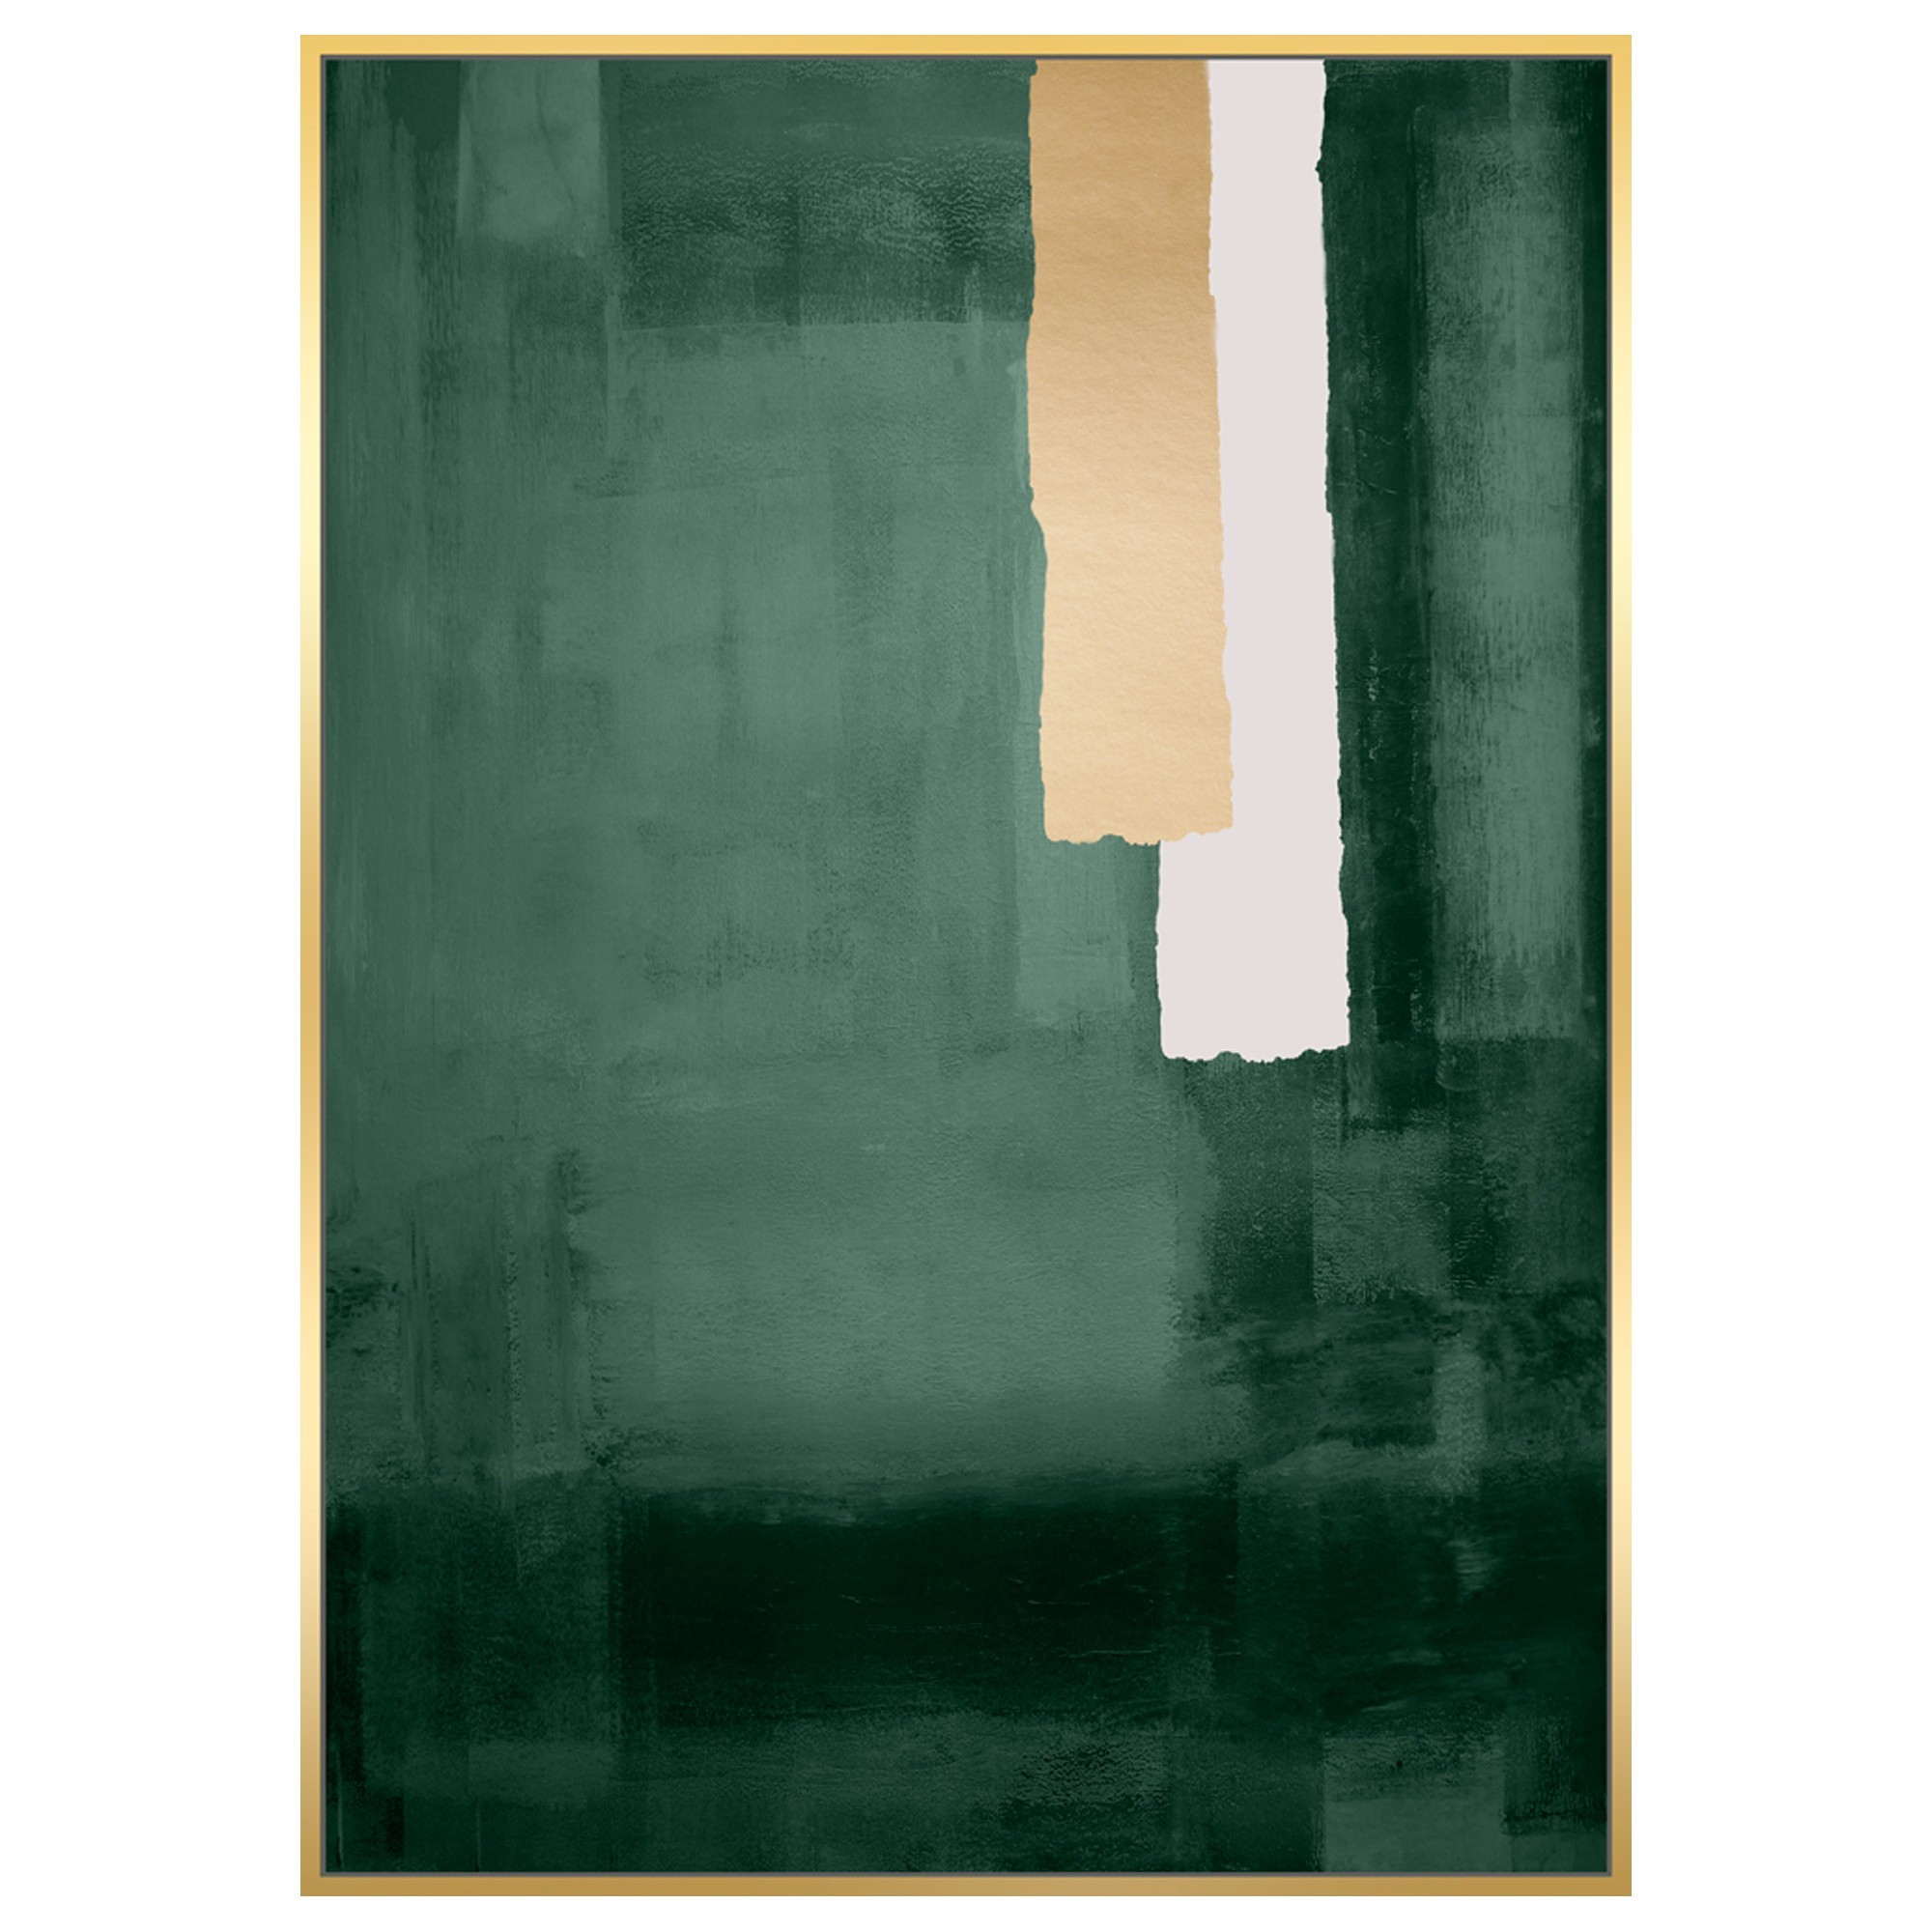 Sako Framed Hand Painted Abstract Canvas Wall Art, 120cm